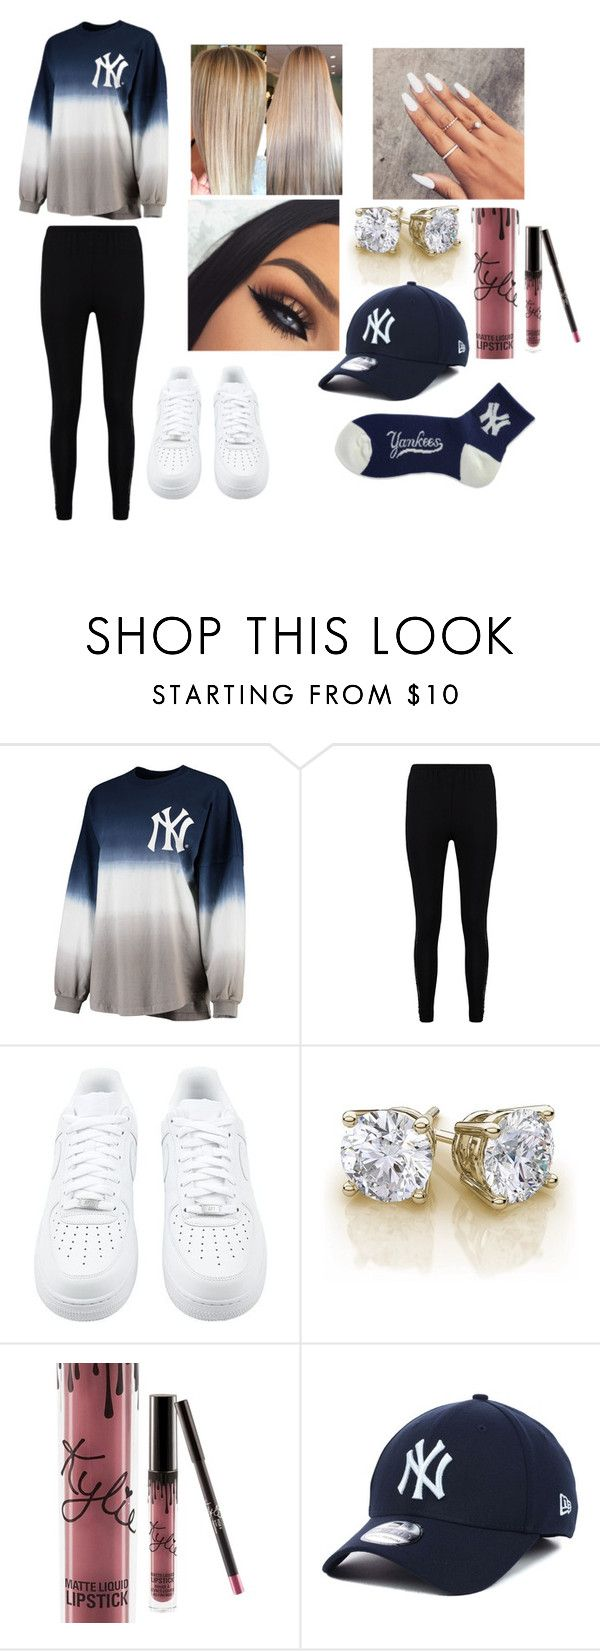 """New York Yankees Outfit"" by hey-its-valerie ❤ liked on Polyvore featuring Boohoo, NIKE, Kylie Cosmetics, New Era and For Bare Feet"